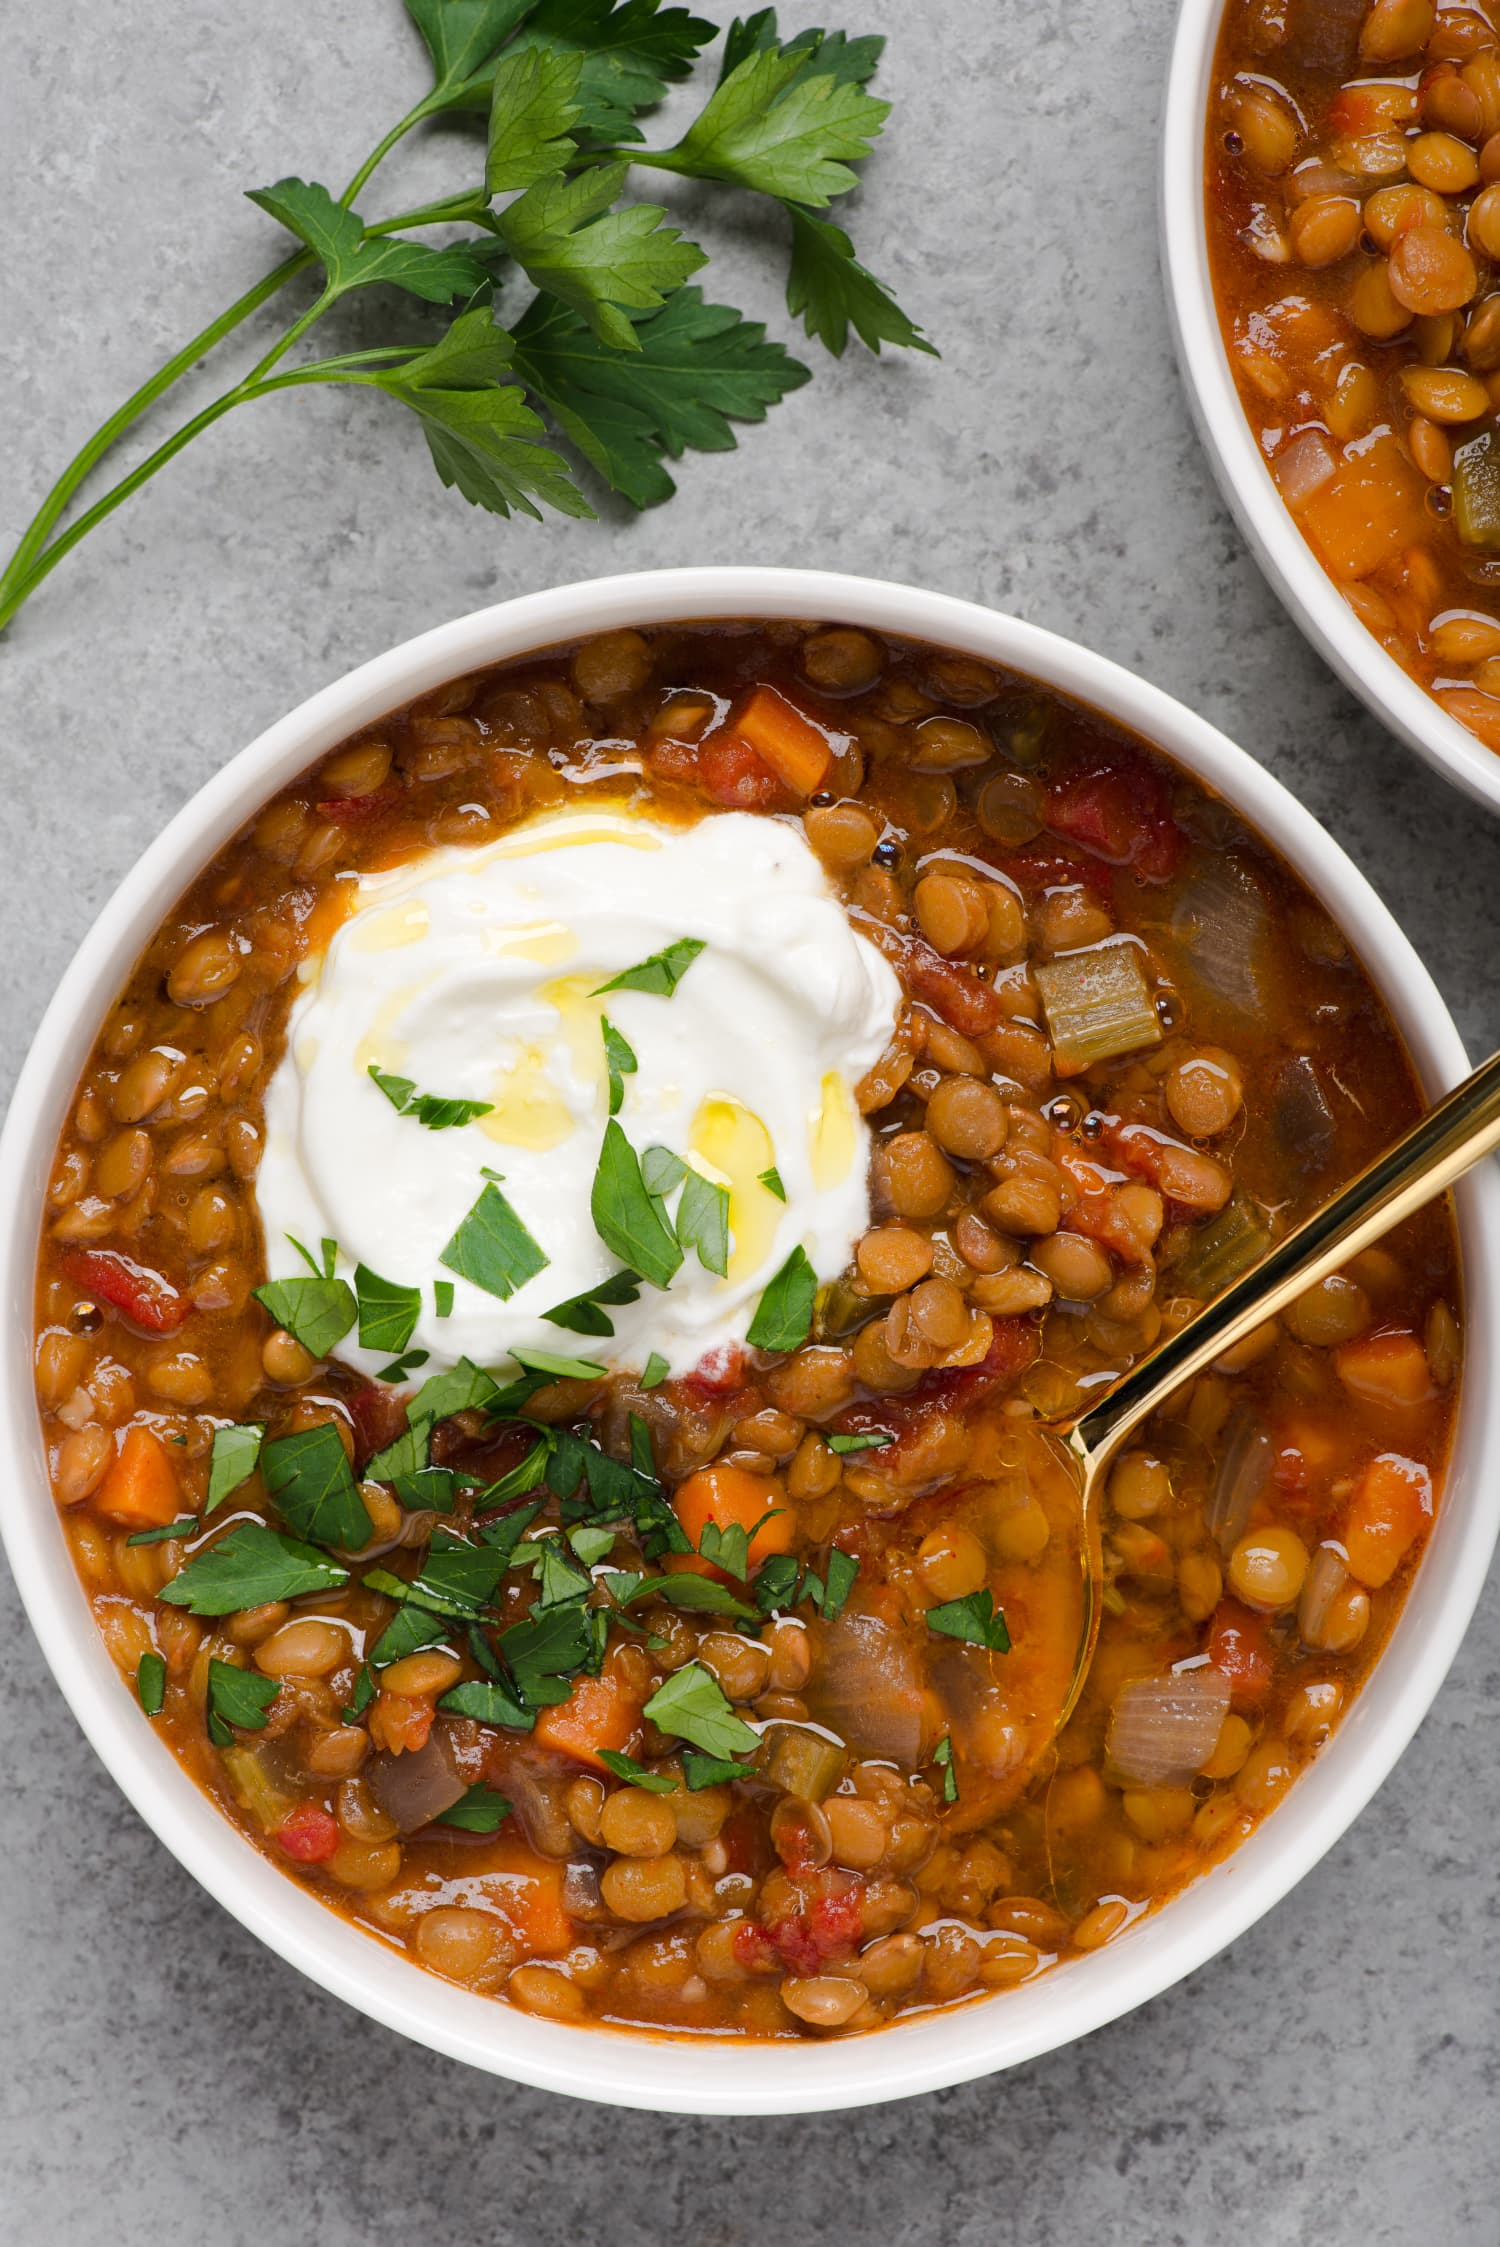 Recipe: Easy Slow Cooker Lentil Soup